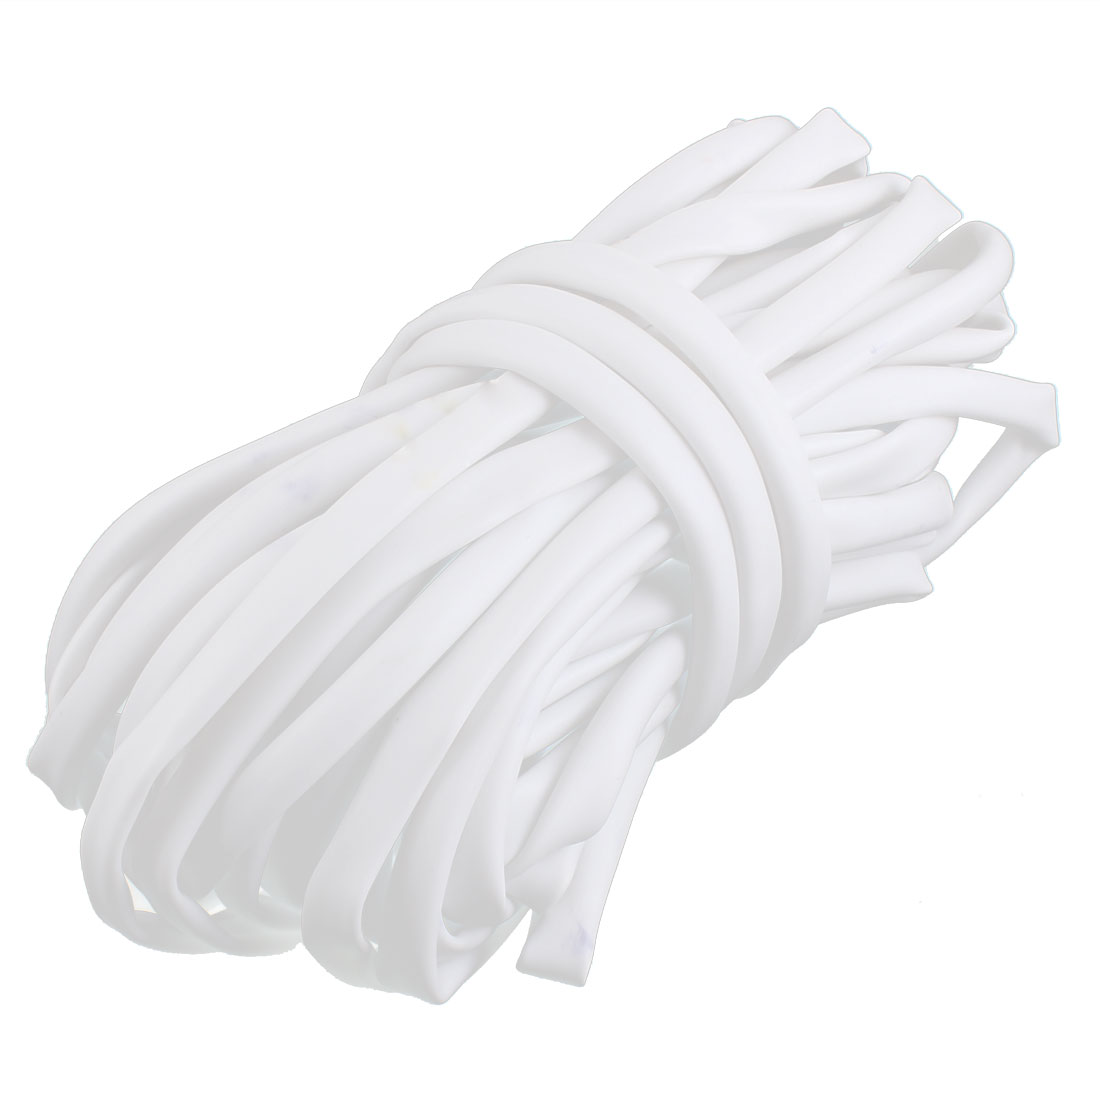 15M Long 6mm Inner Dia PVC Tube Sleeve White for Wire Marking Printing Machine